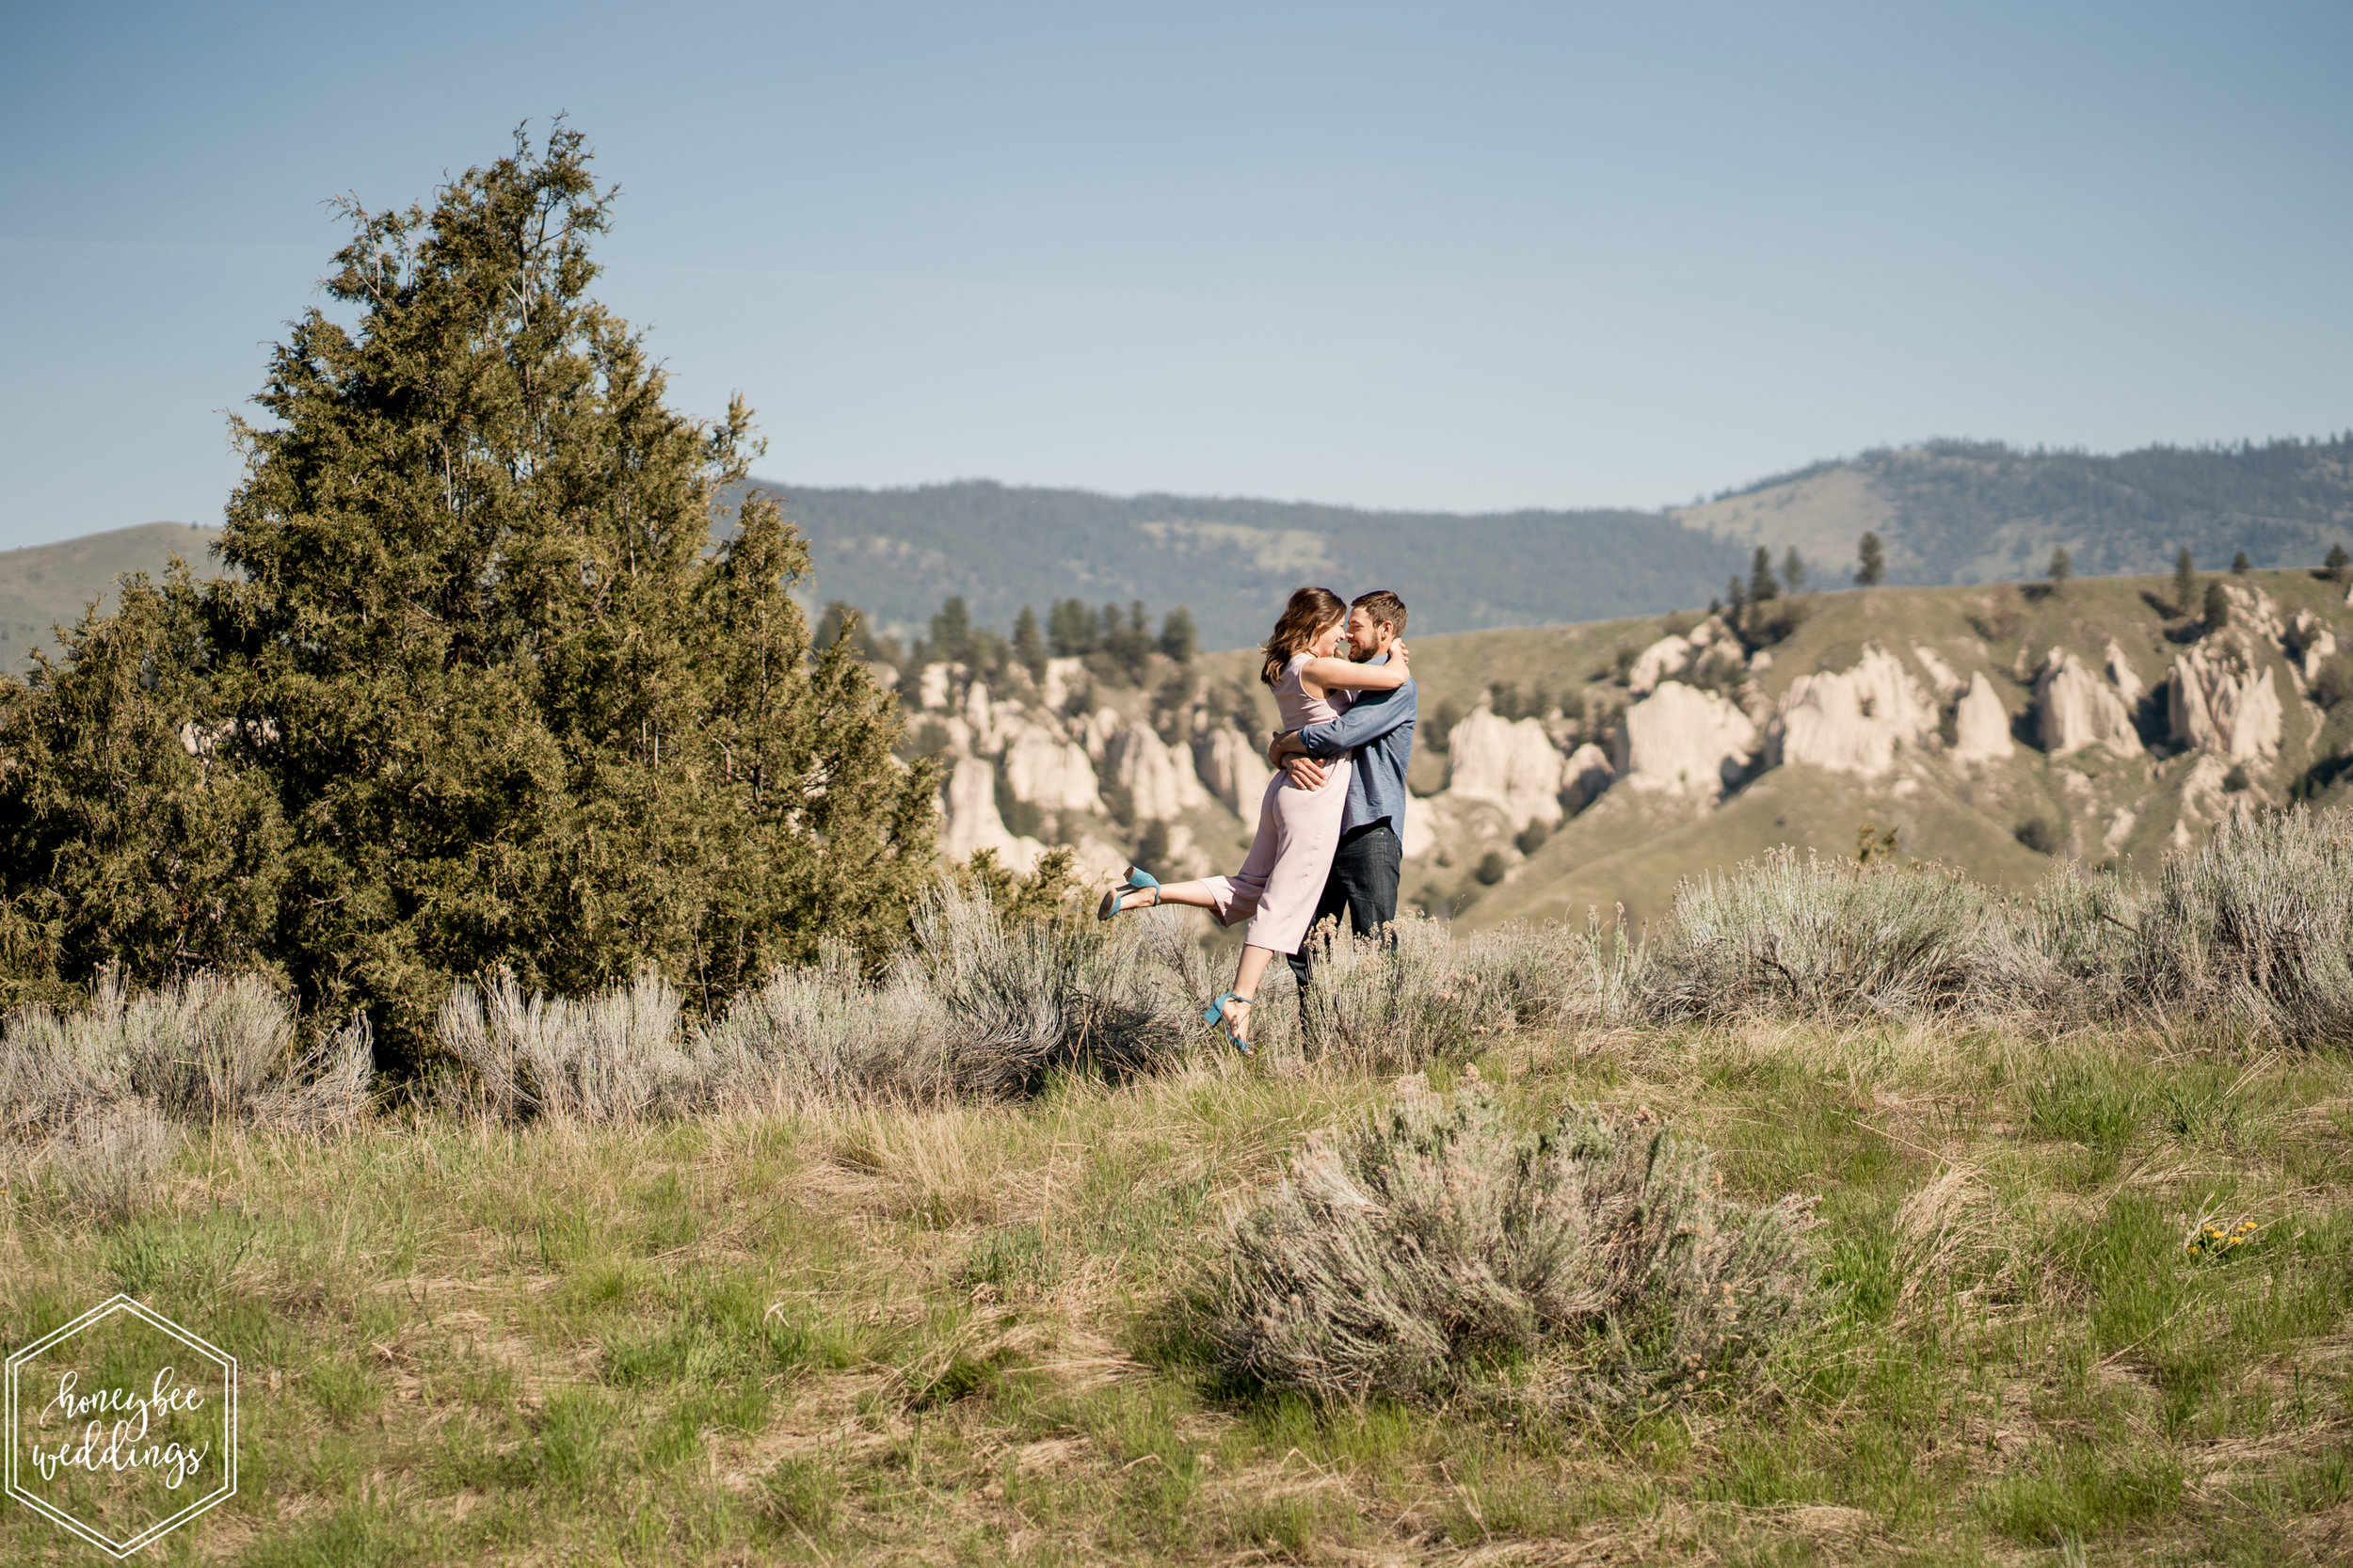 122Montana Wedding Photographer_Polson Engagement Session_Carrie & Matt_Honeybee Weddings_May 11, 2019-188.jpg